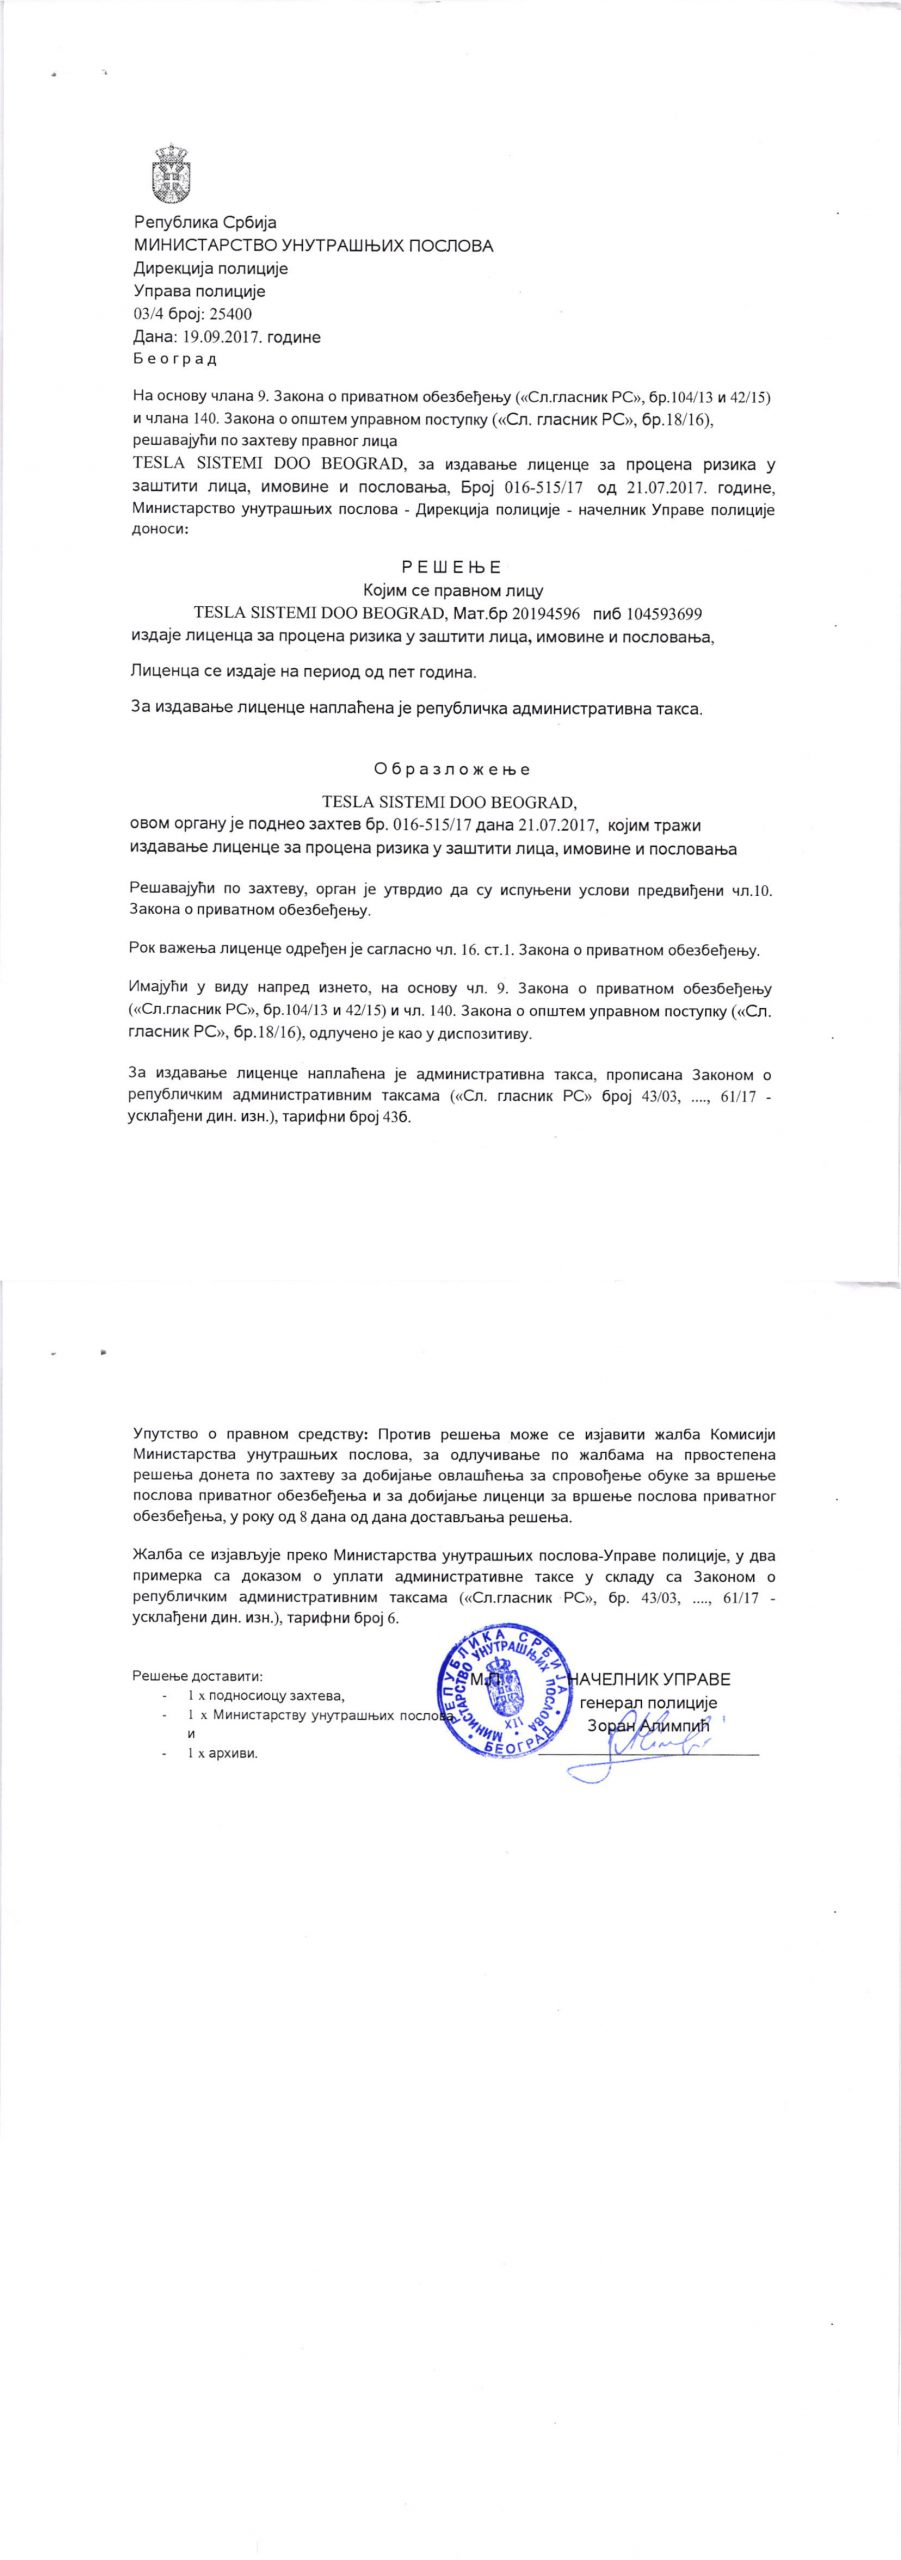 License for risk assessment in the protection of persons, property and business